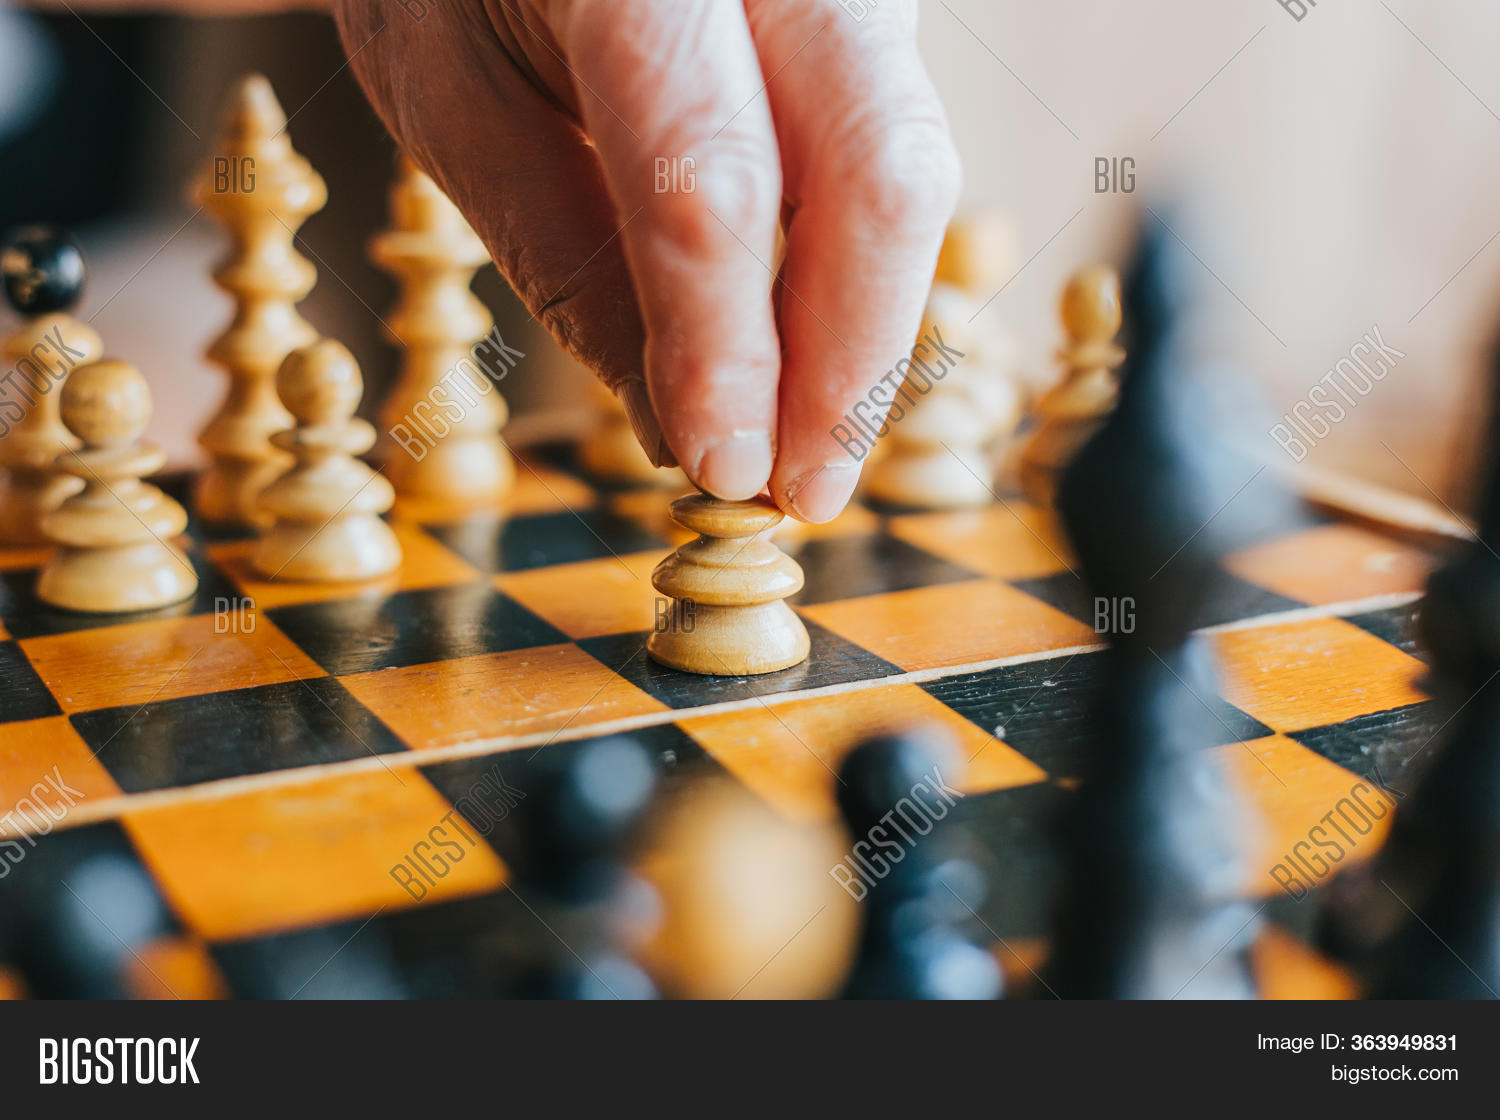 Hand Moving Pawn Piece Image & Photo (Free Trial) | Bigstock